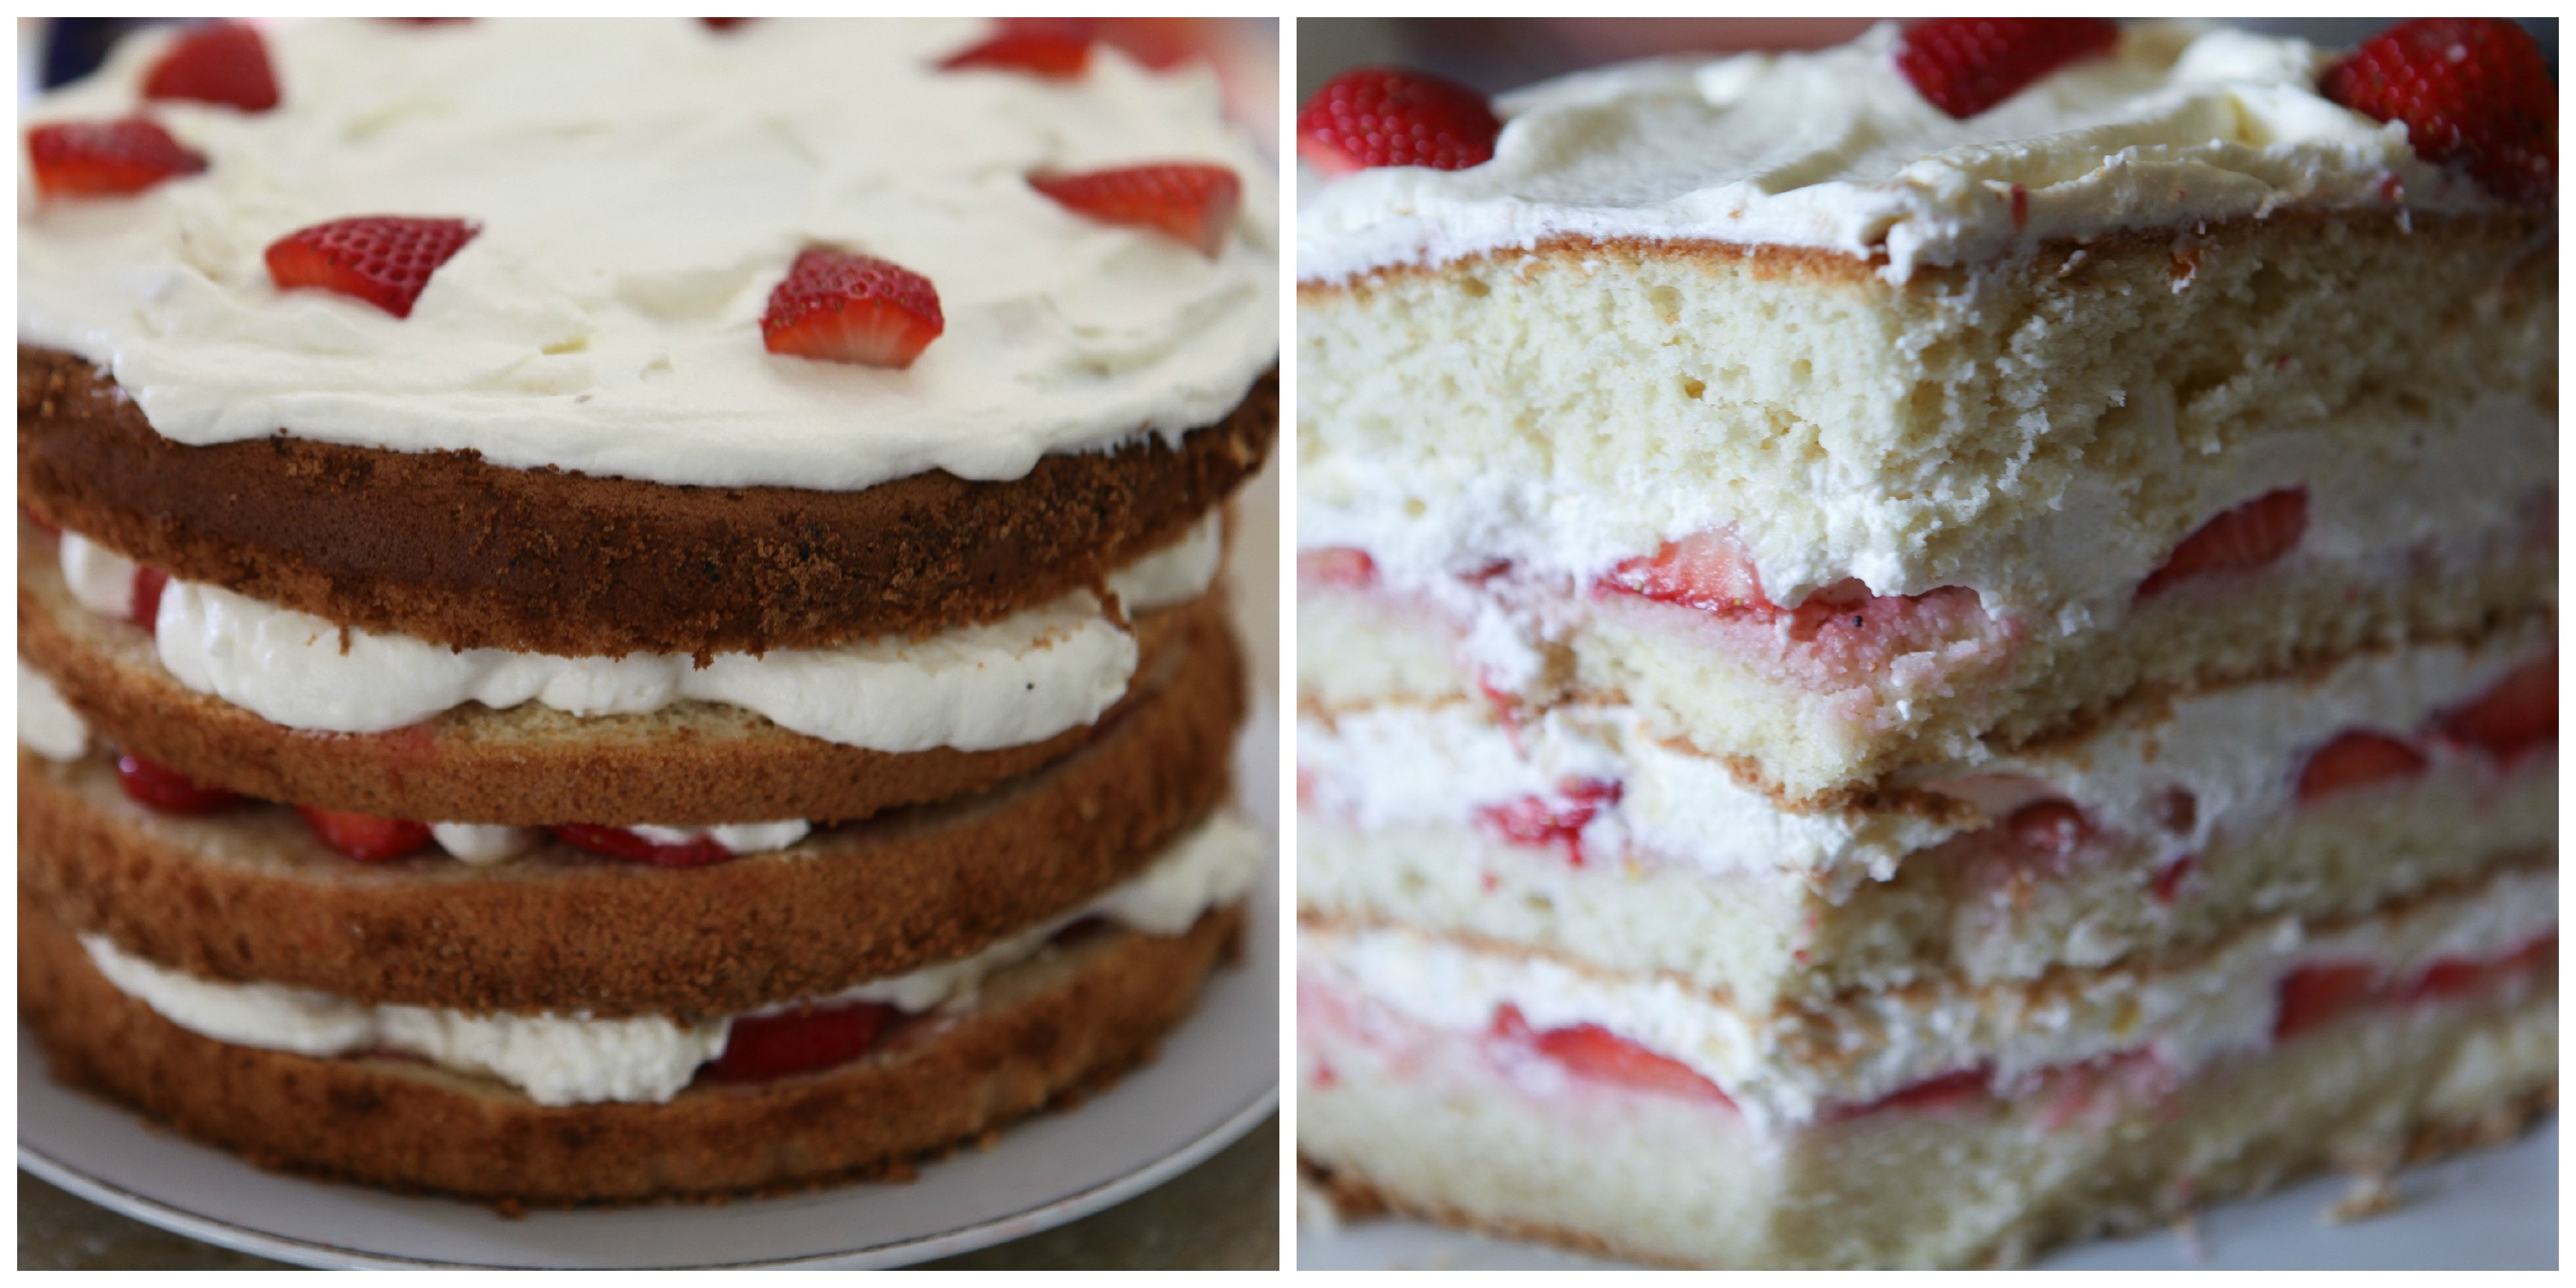 Strawberry & Cream Chiffon Cake: Gluten Free | A Home Made By ...